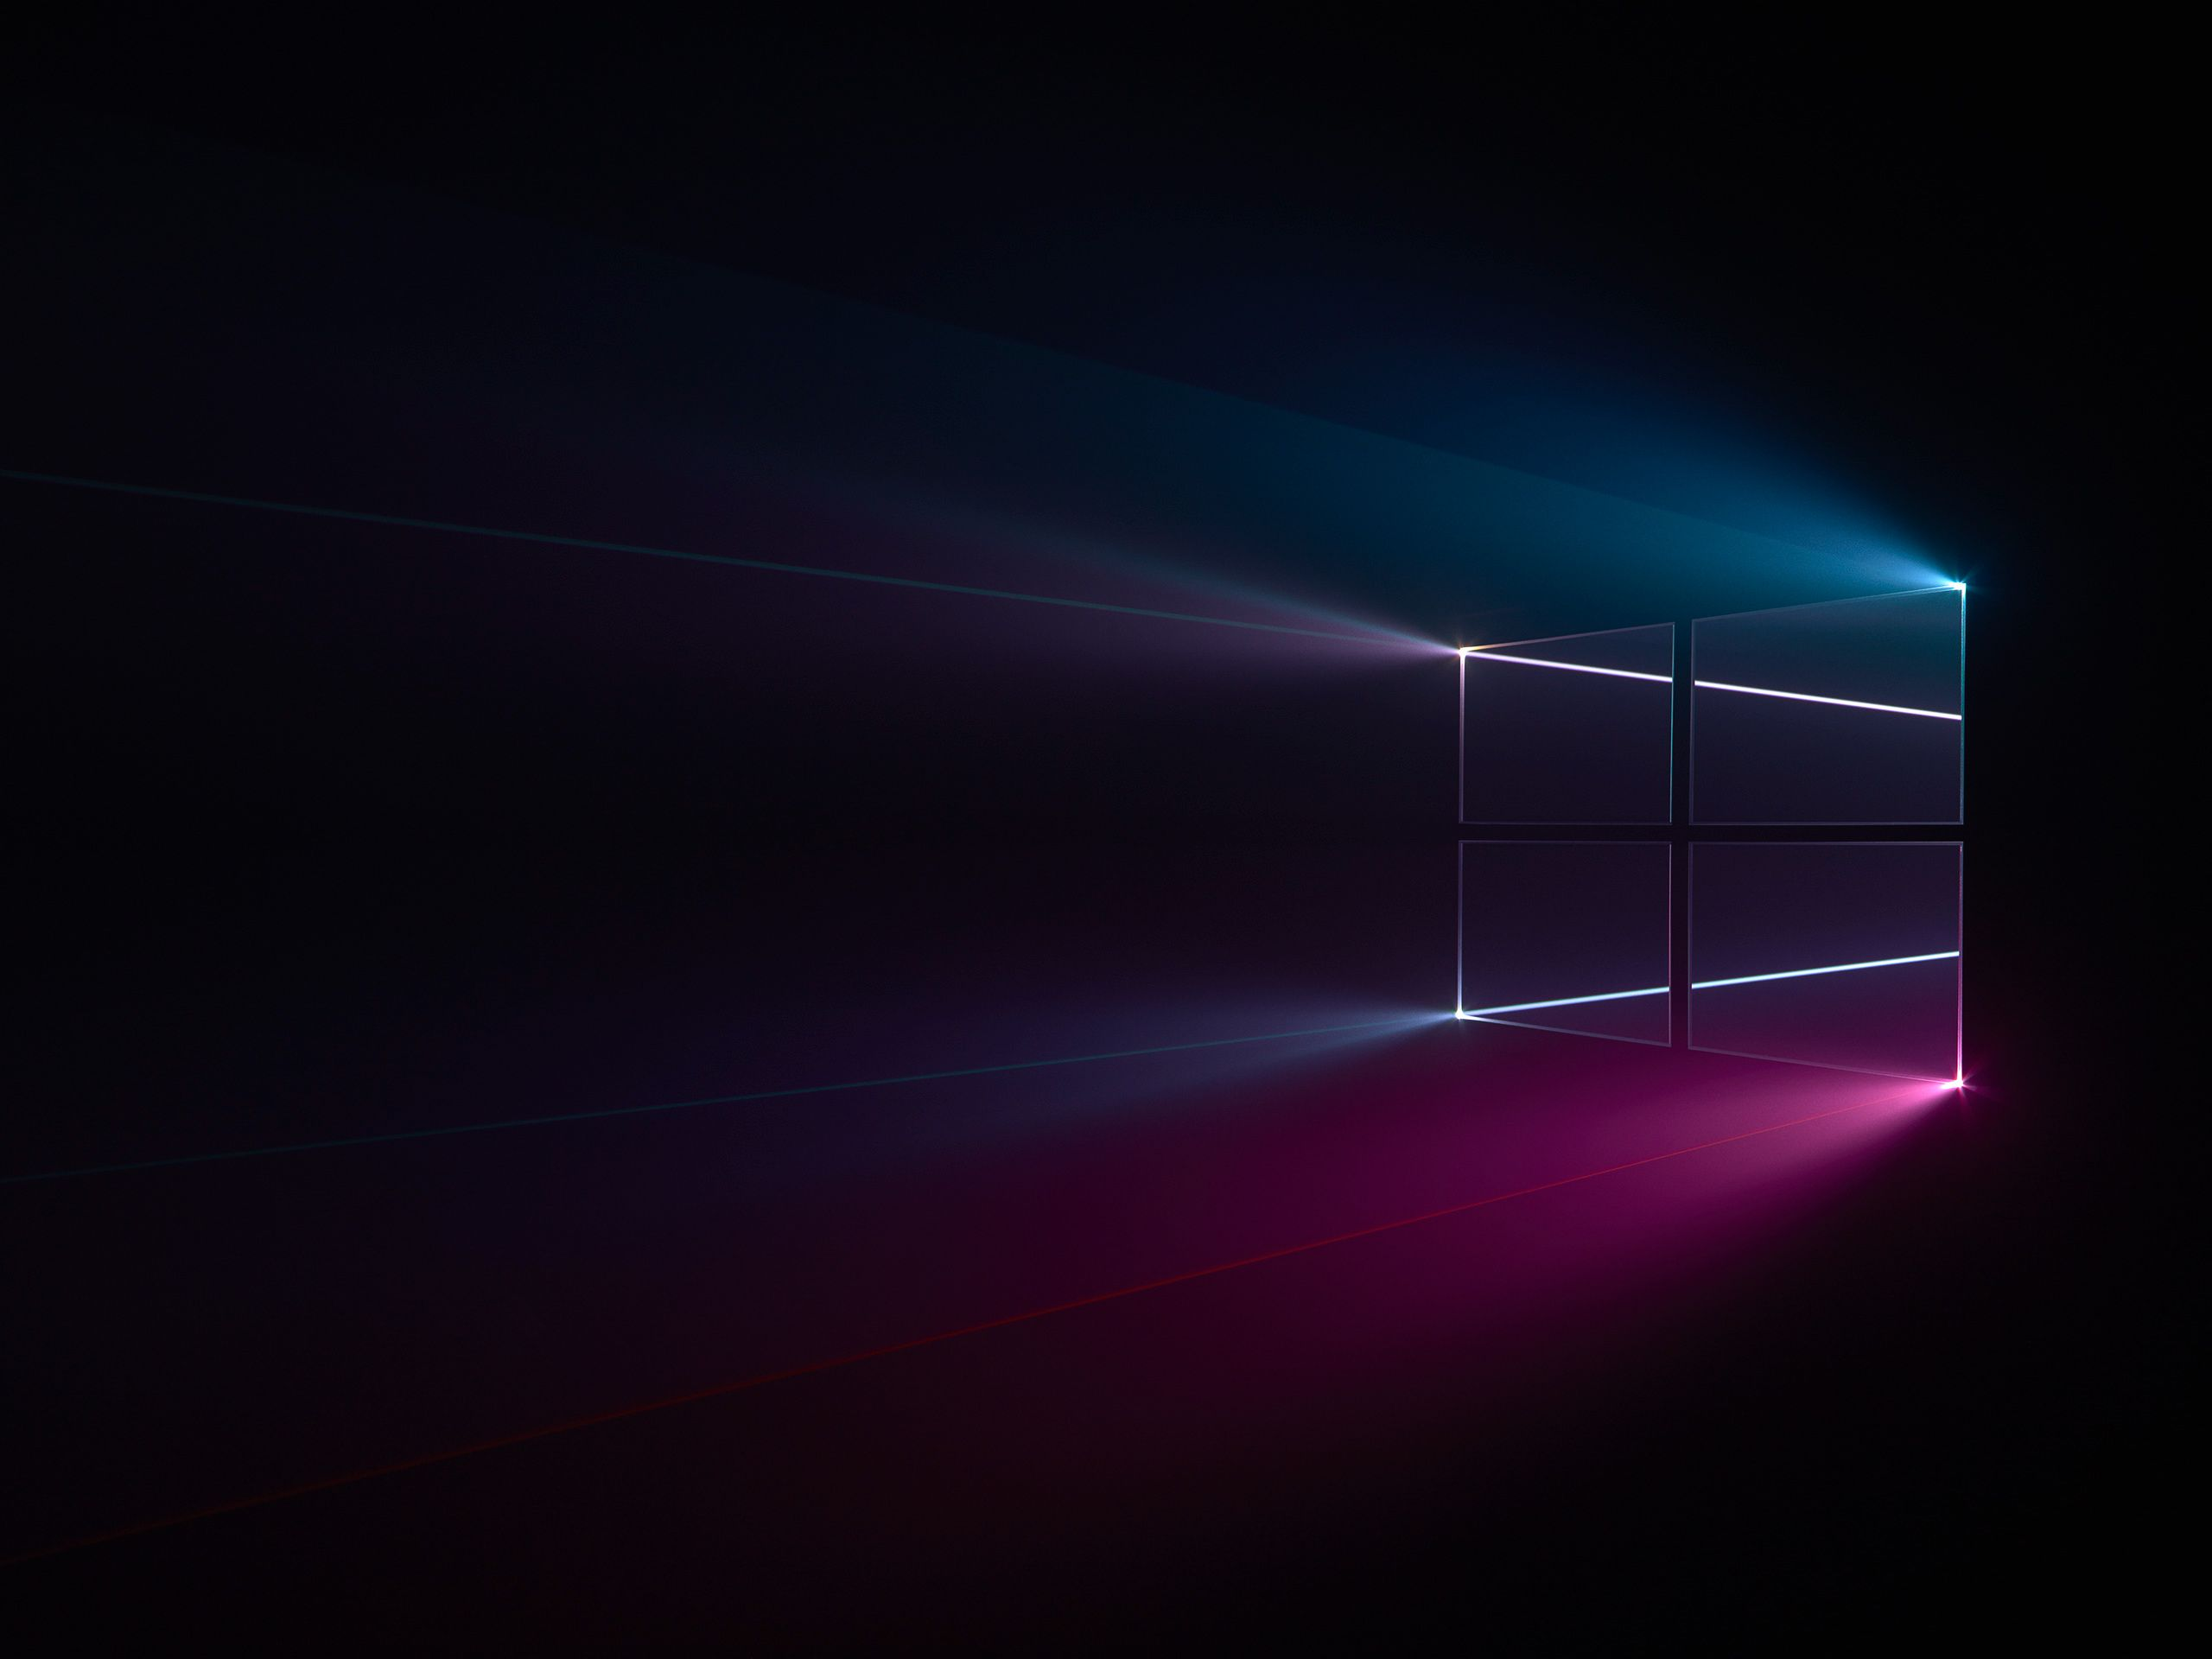 Windows 10 Dark Theme Wallpaper 4k